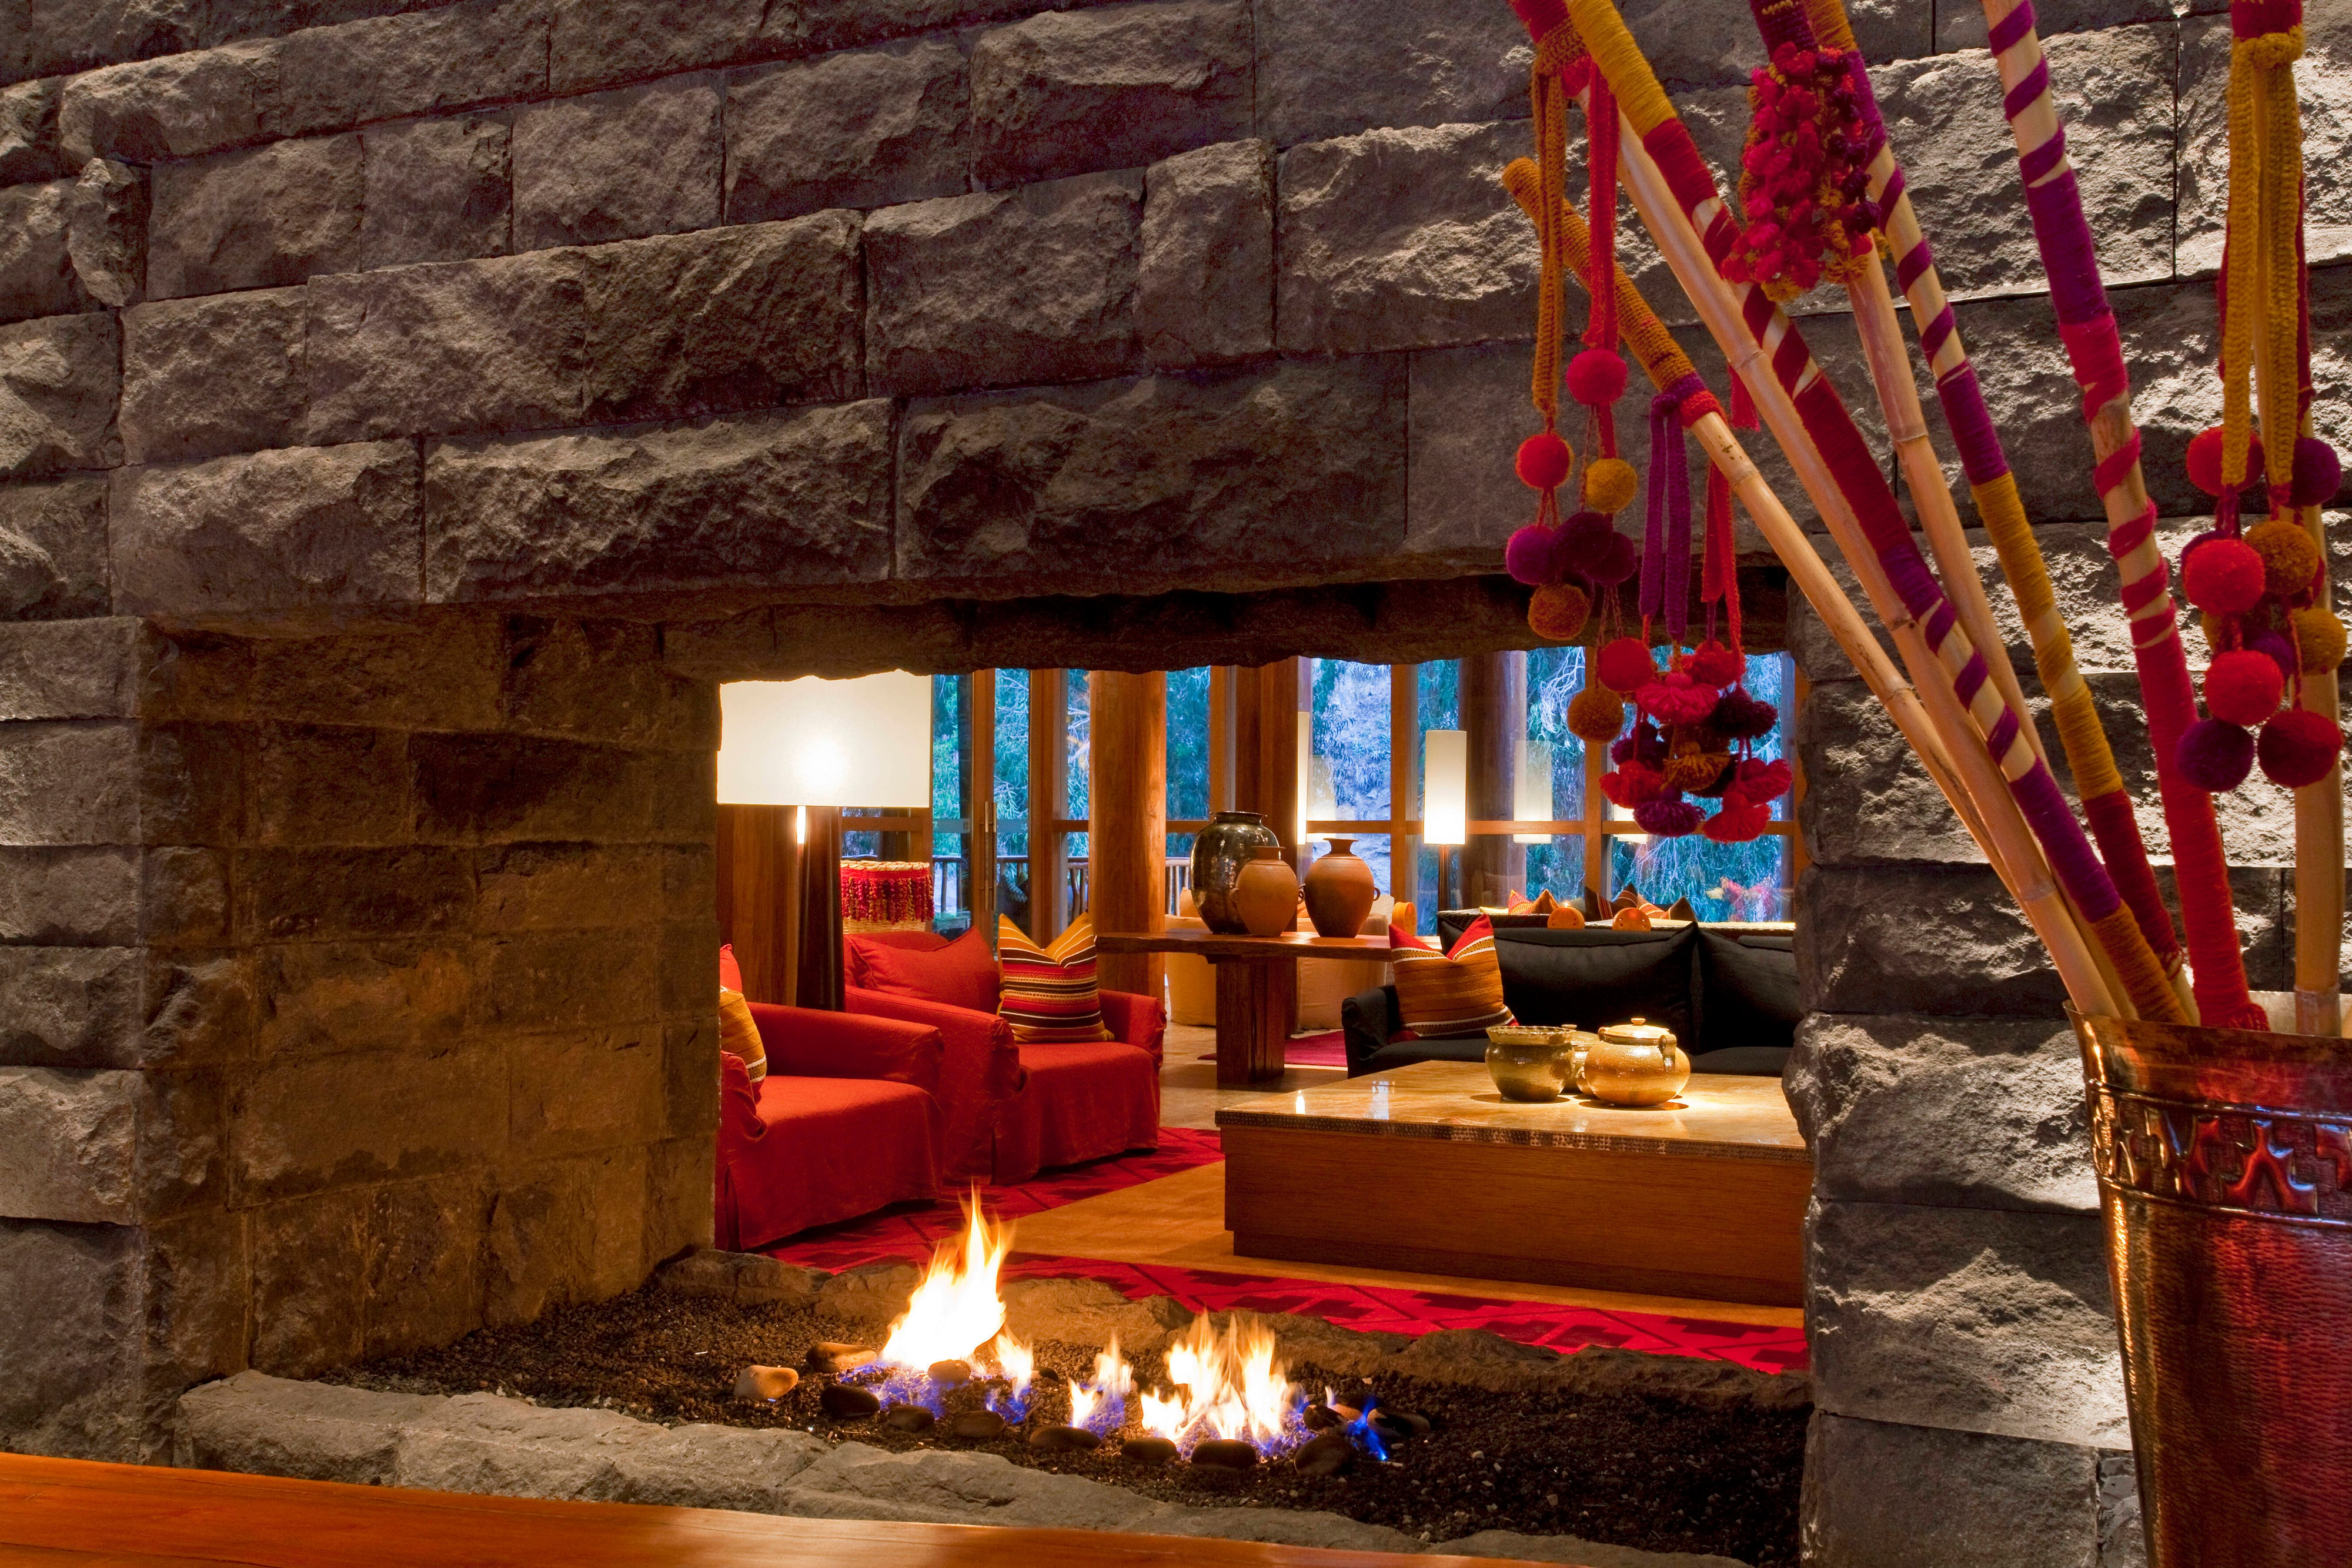 Lobby - fire place